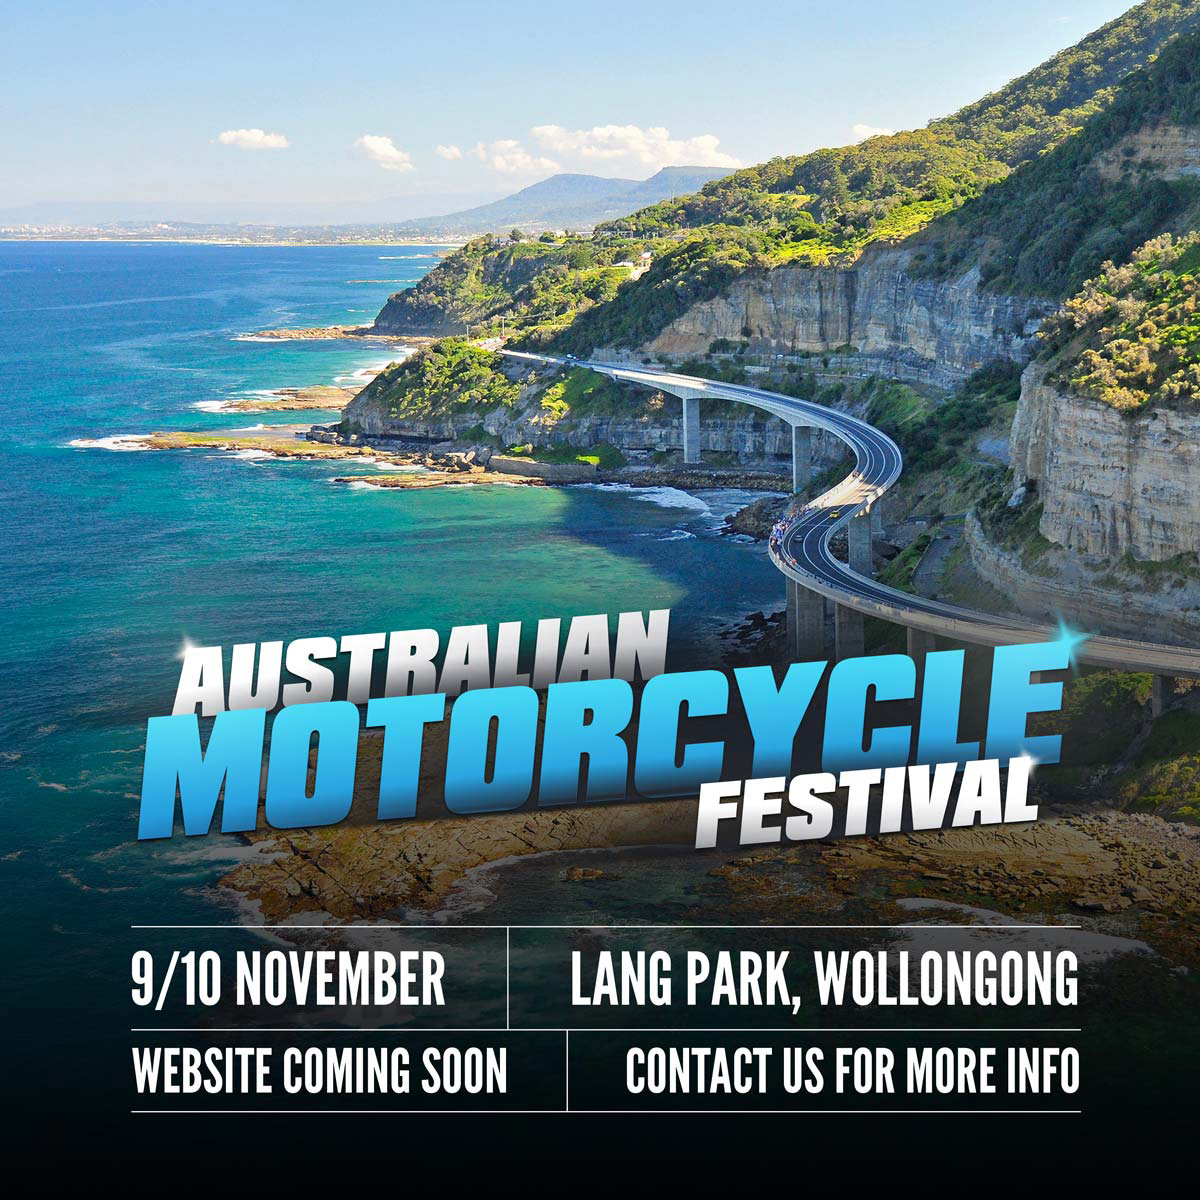 The Australian Motorcycle Festival is set for Woolongong